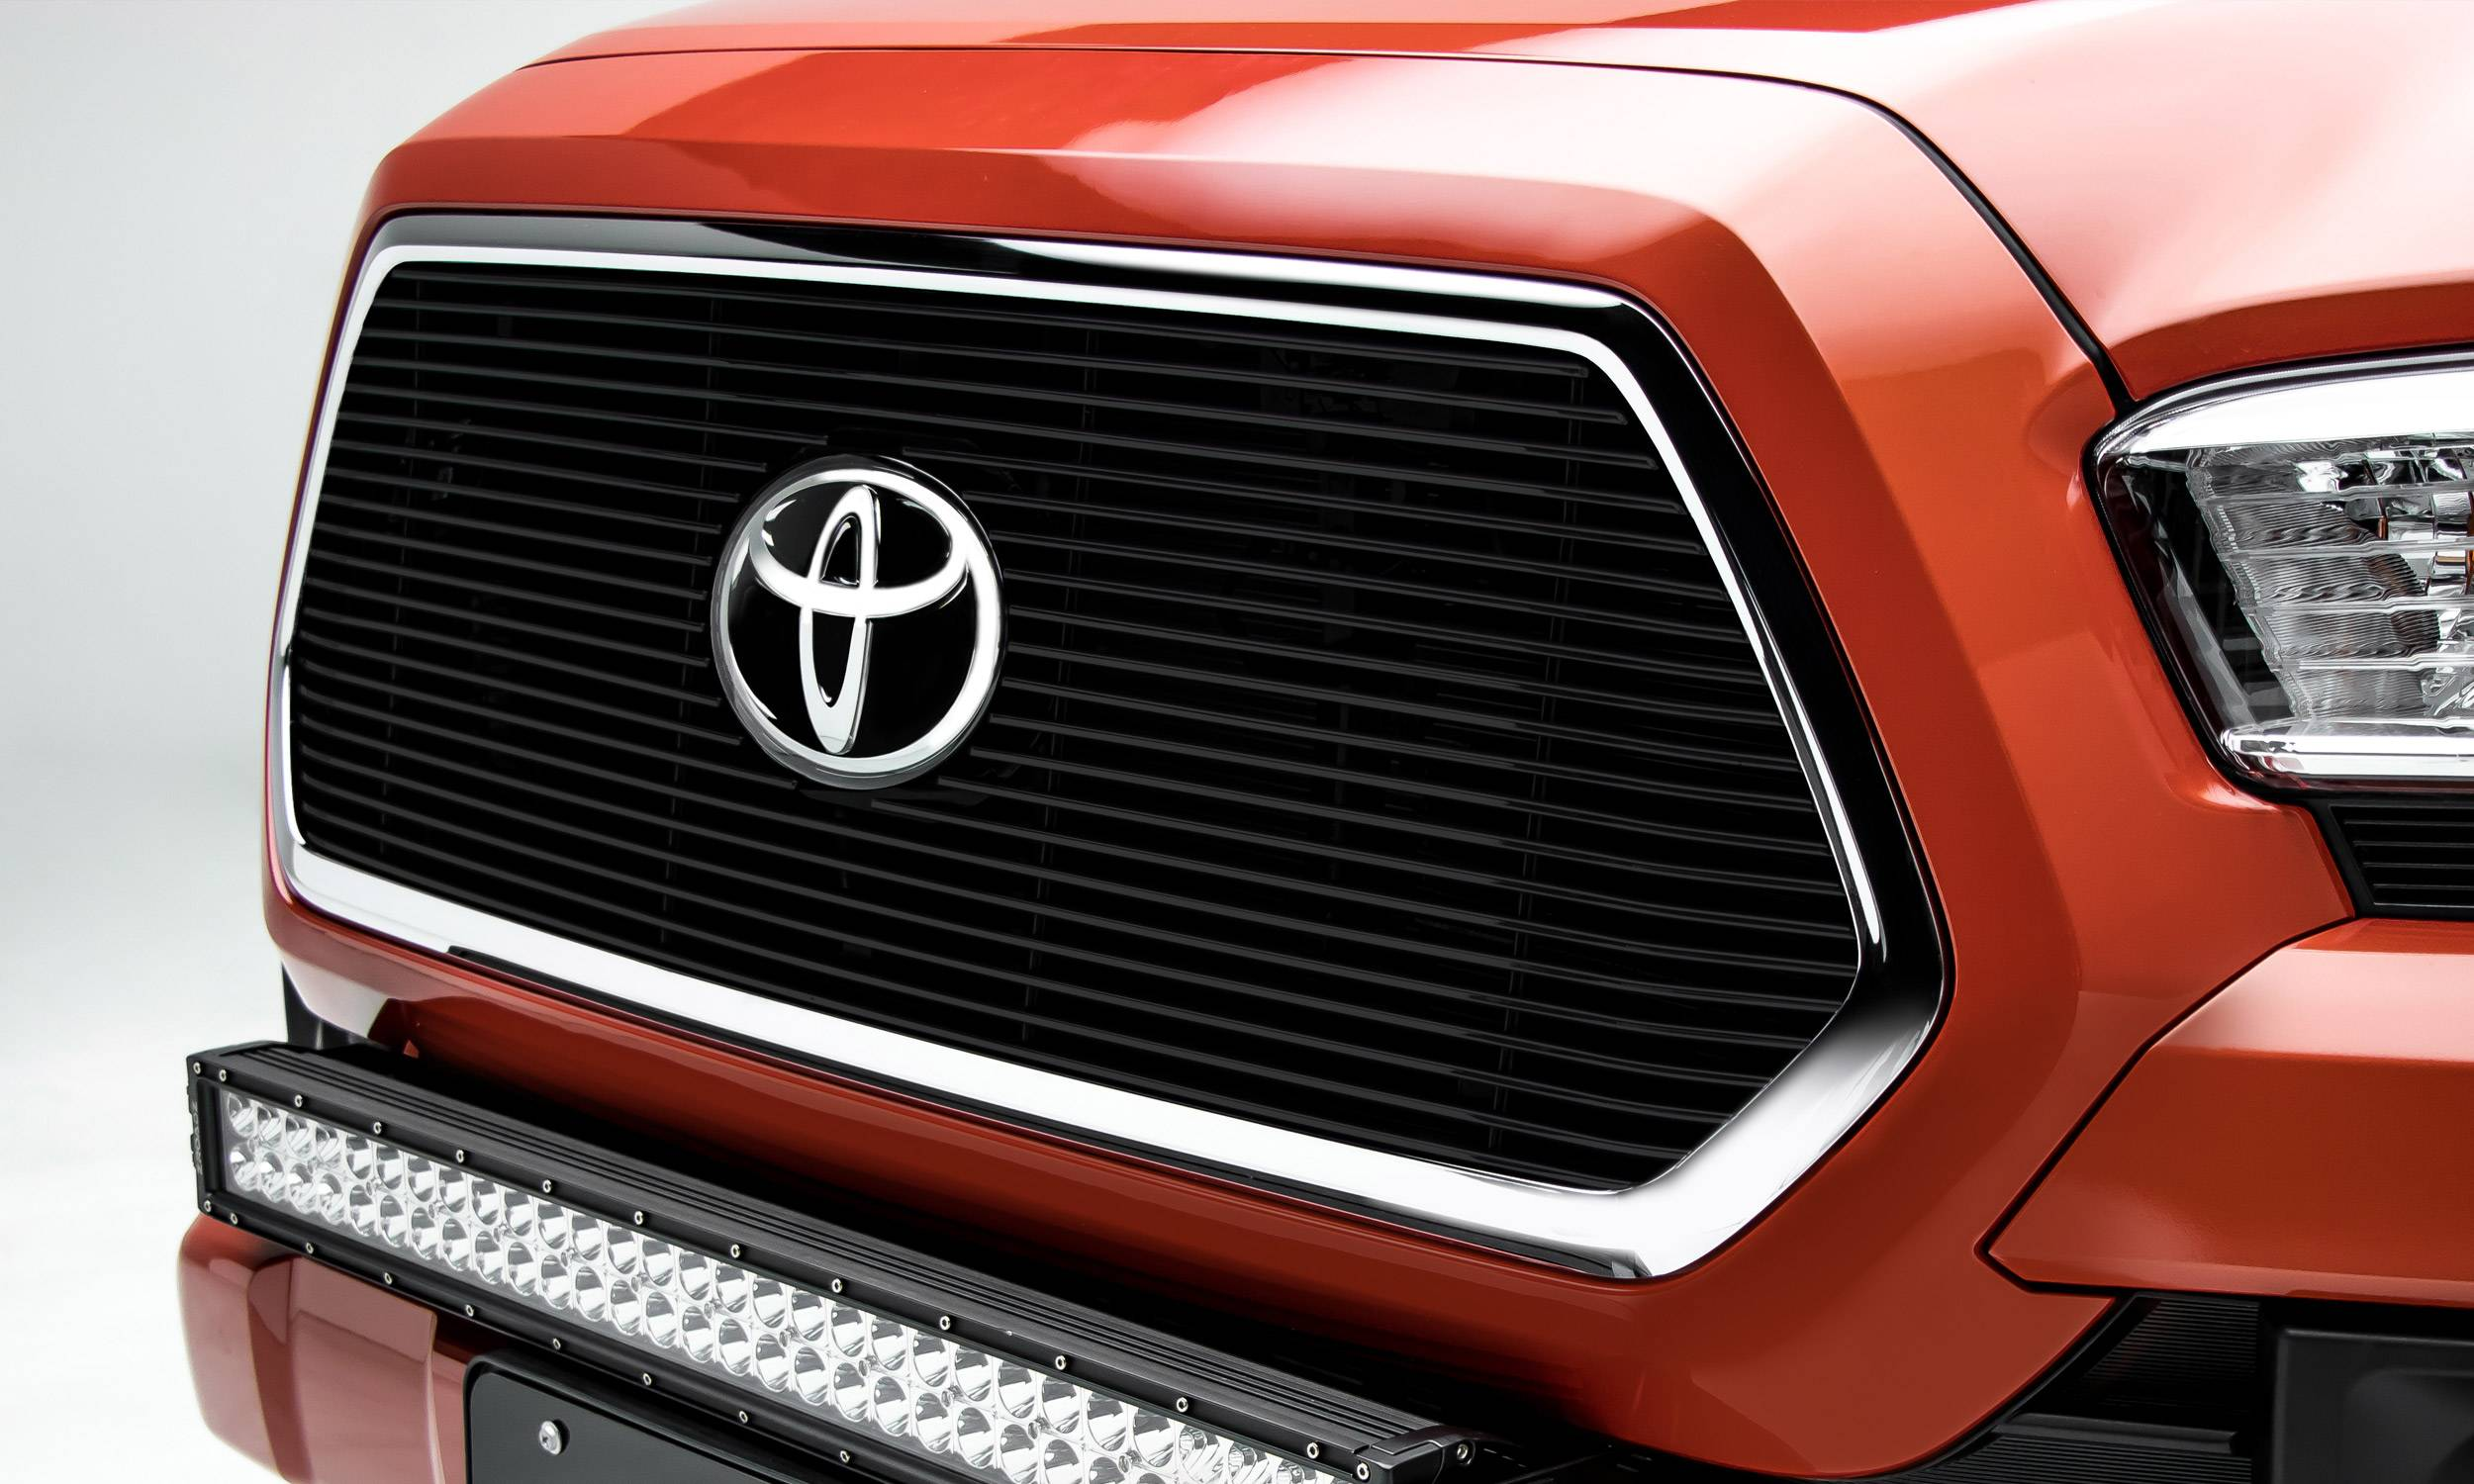 T-REX Grilles - 2018-2021 Tacoma Billet Grille, Black, 1 Pc, Insert, Does Not Fit Vehicles with Camera - PN #20950B